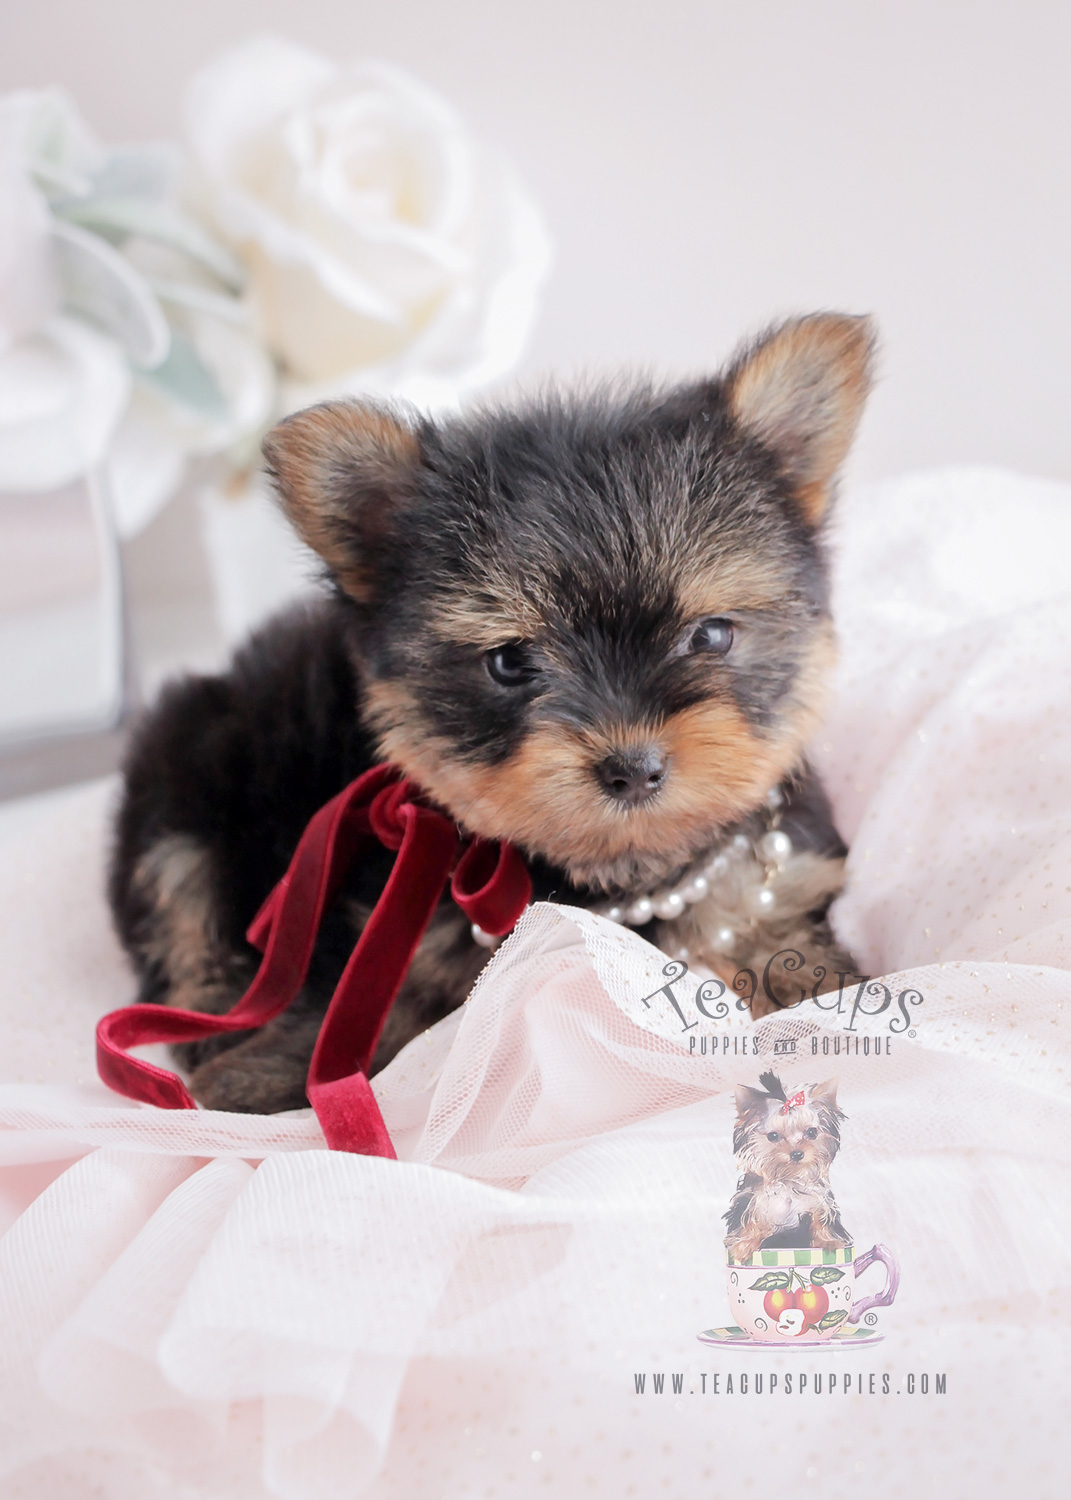 For Sale #063 Teacup Puppies Yorkie Puppy